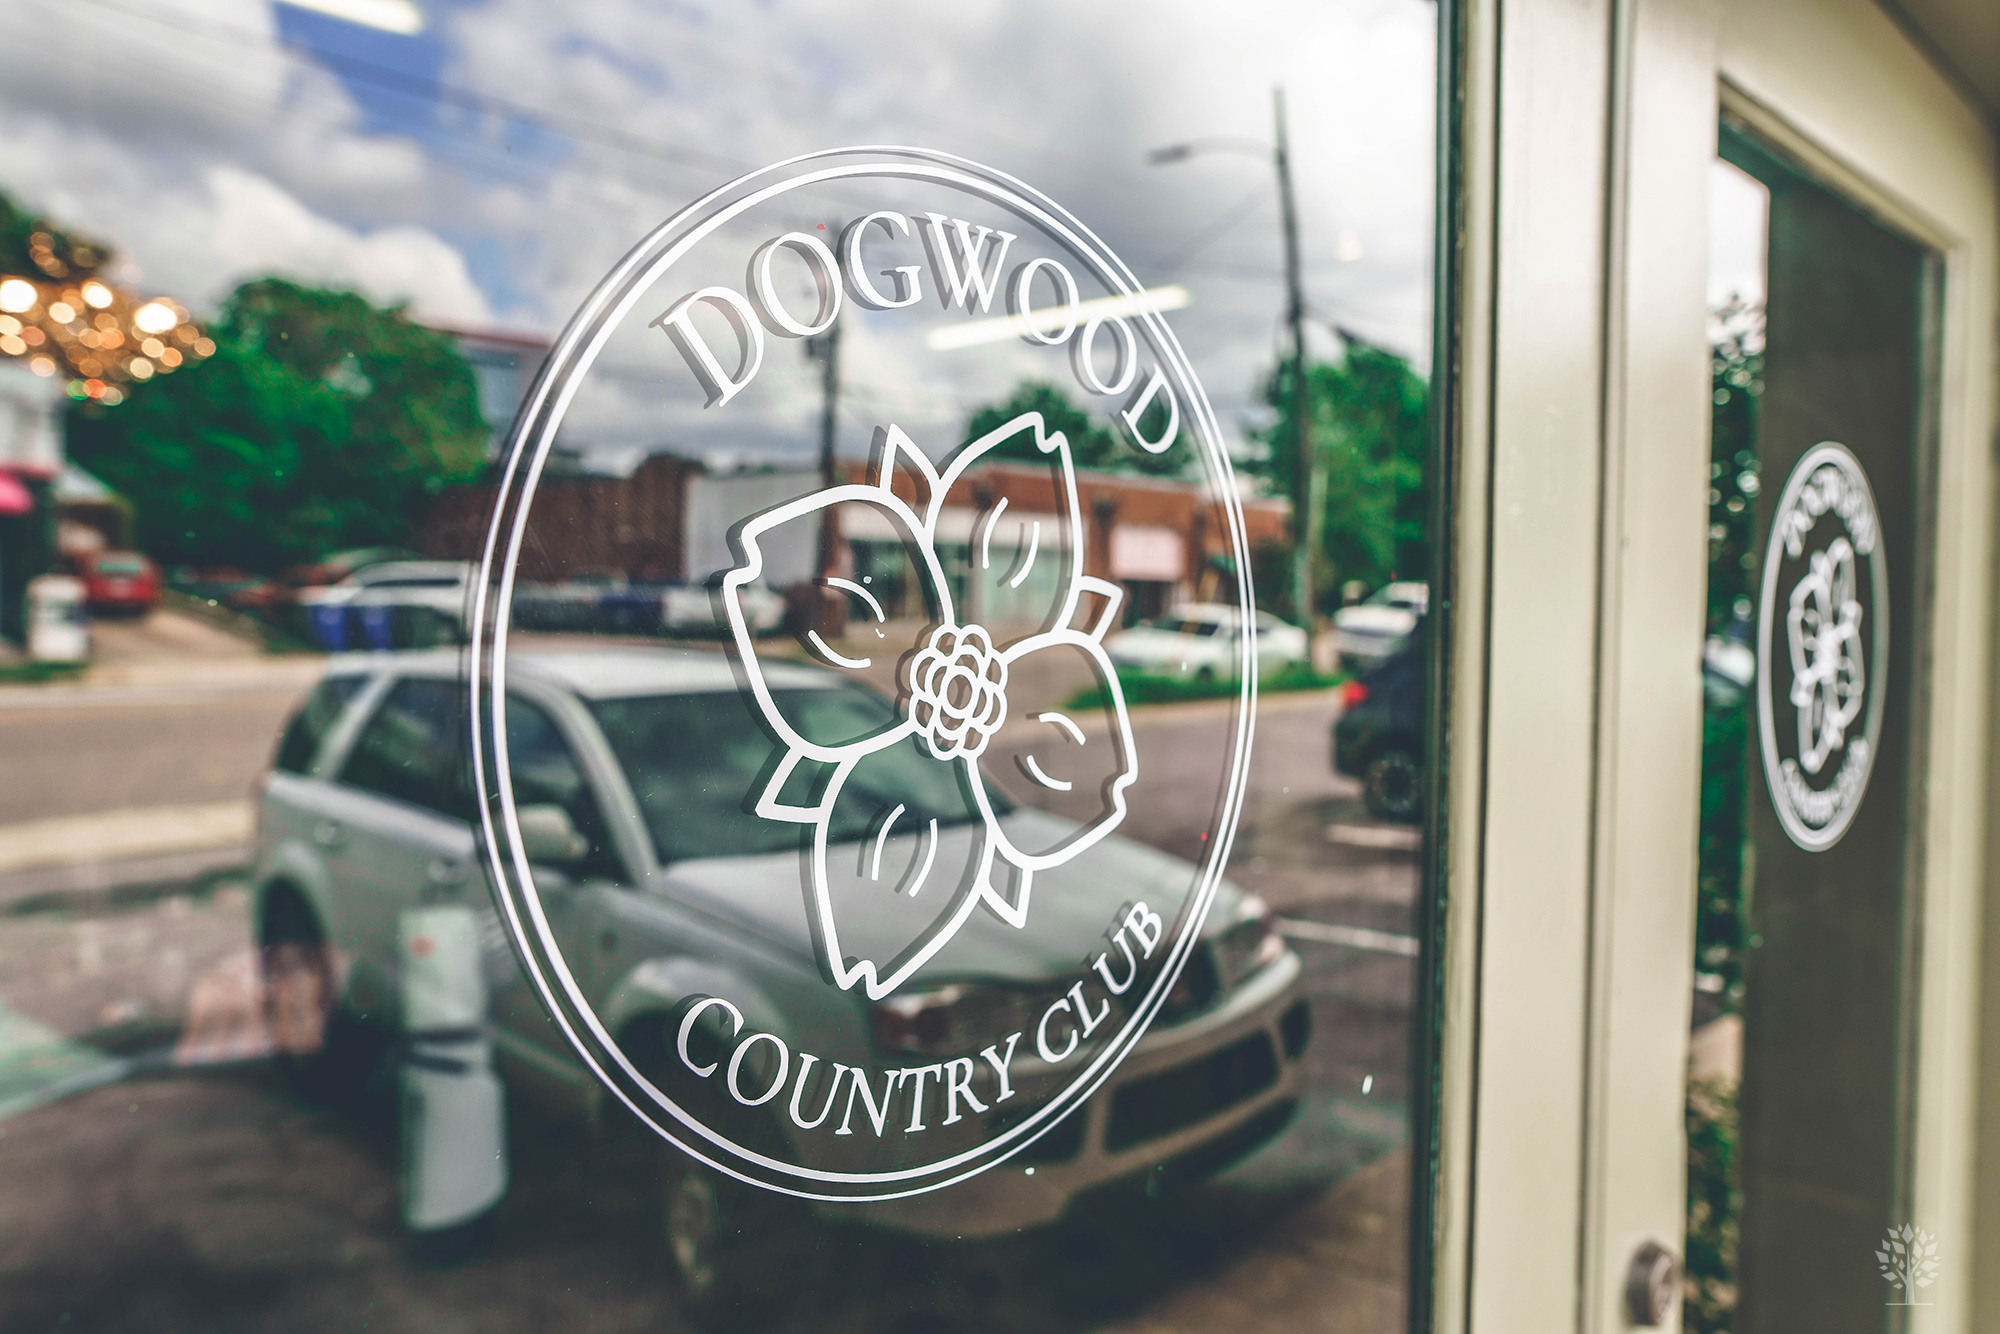 Dogwood Country Club Downtown Raleigh